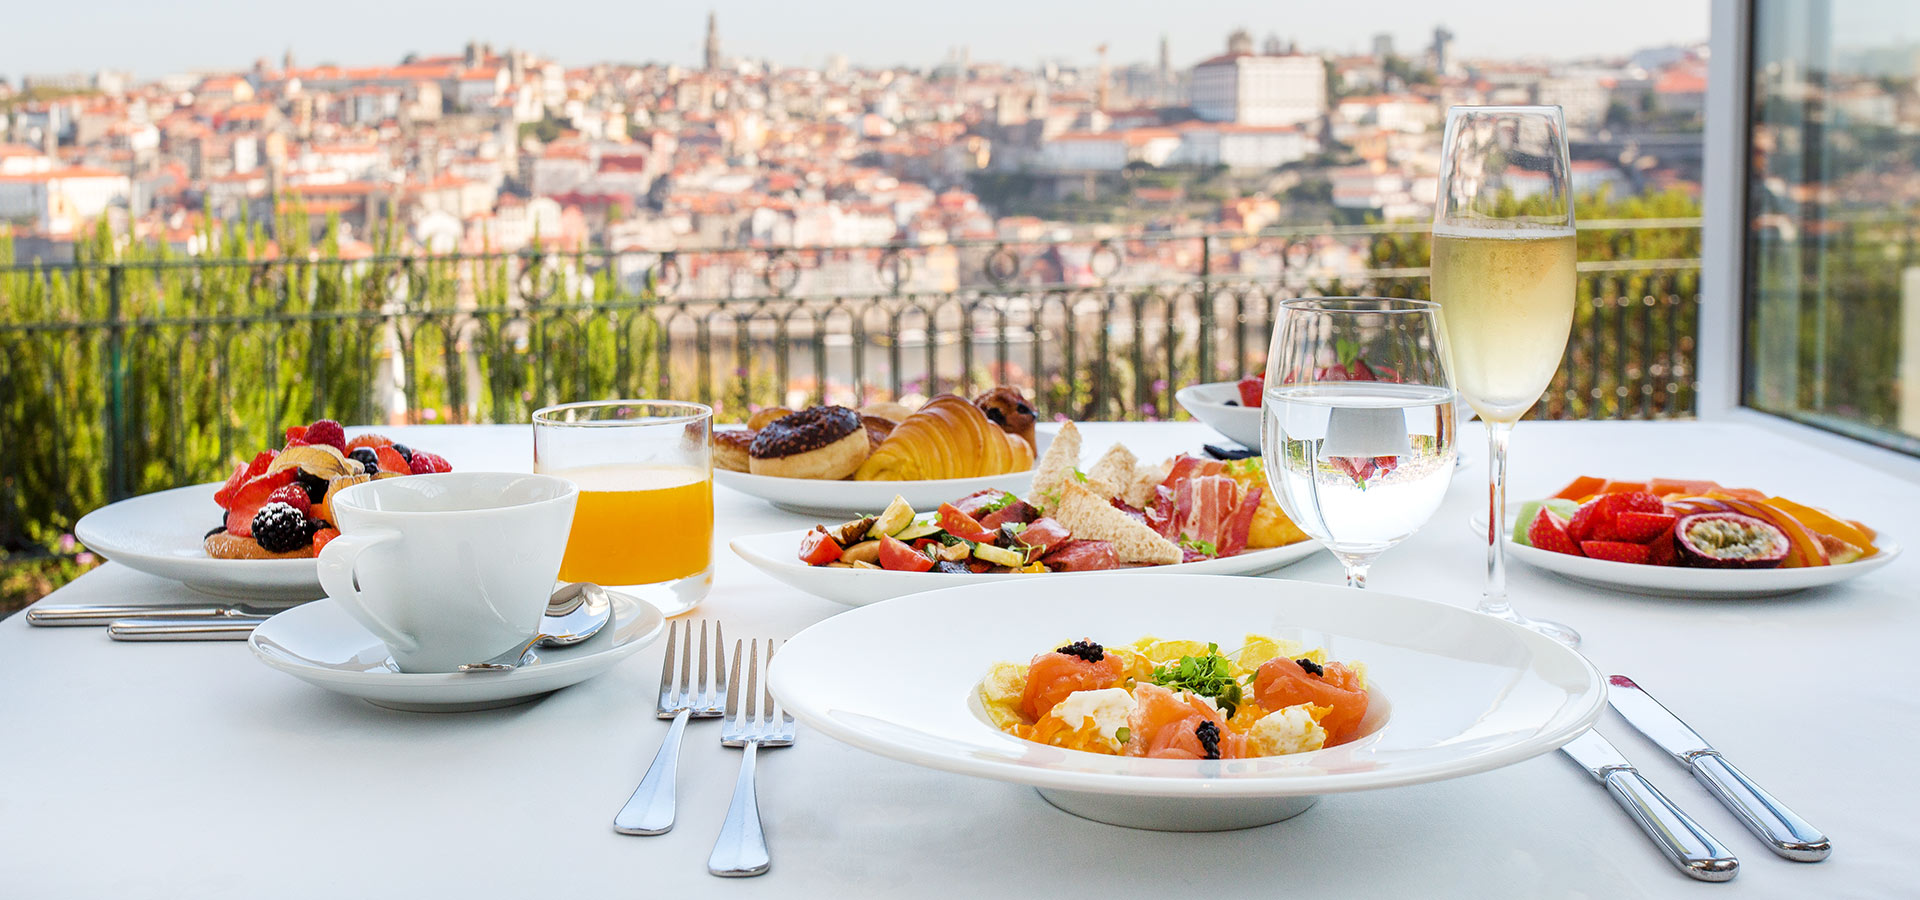 Portuguese Gastronomy: Best Luxury Restaurants in Portugal luxury restaurants Portuguese Gastronomy: Best Luxury Restaurants in Portugal pa yho 7052898845a797b6960226